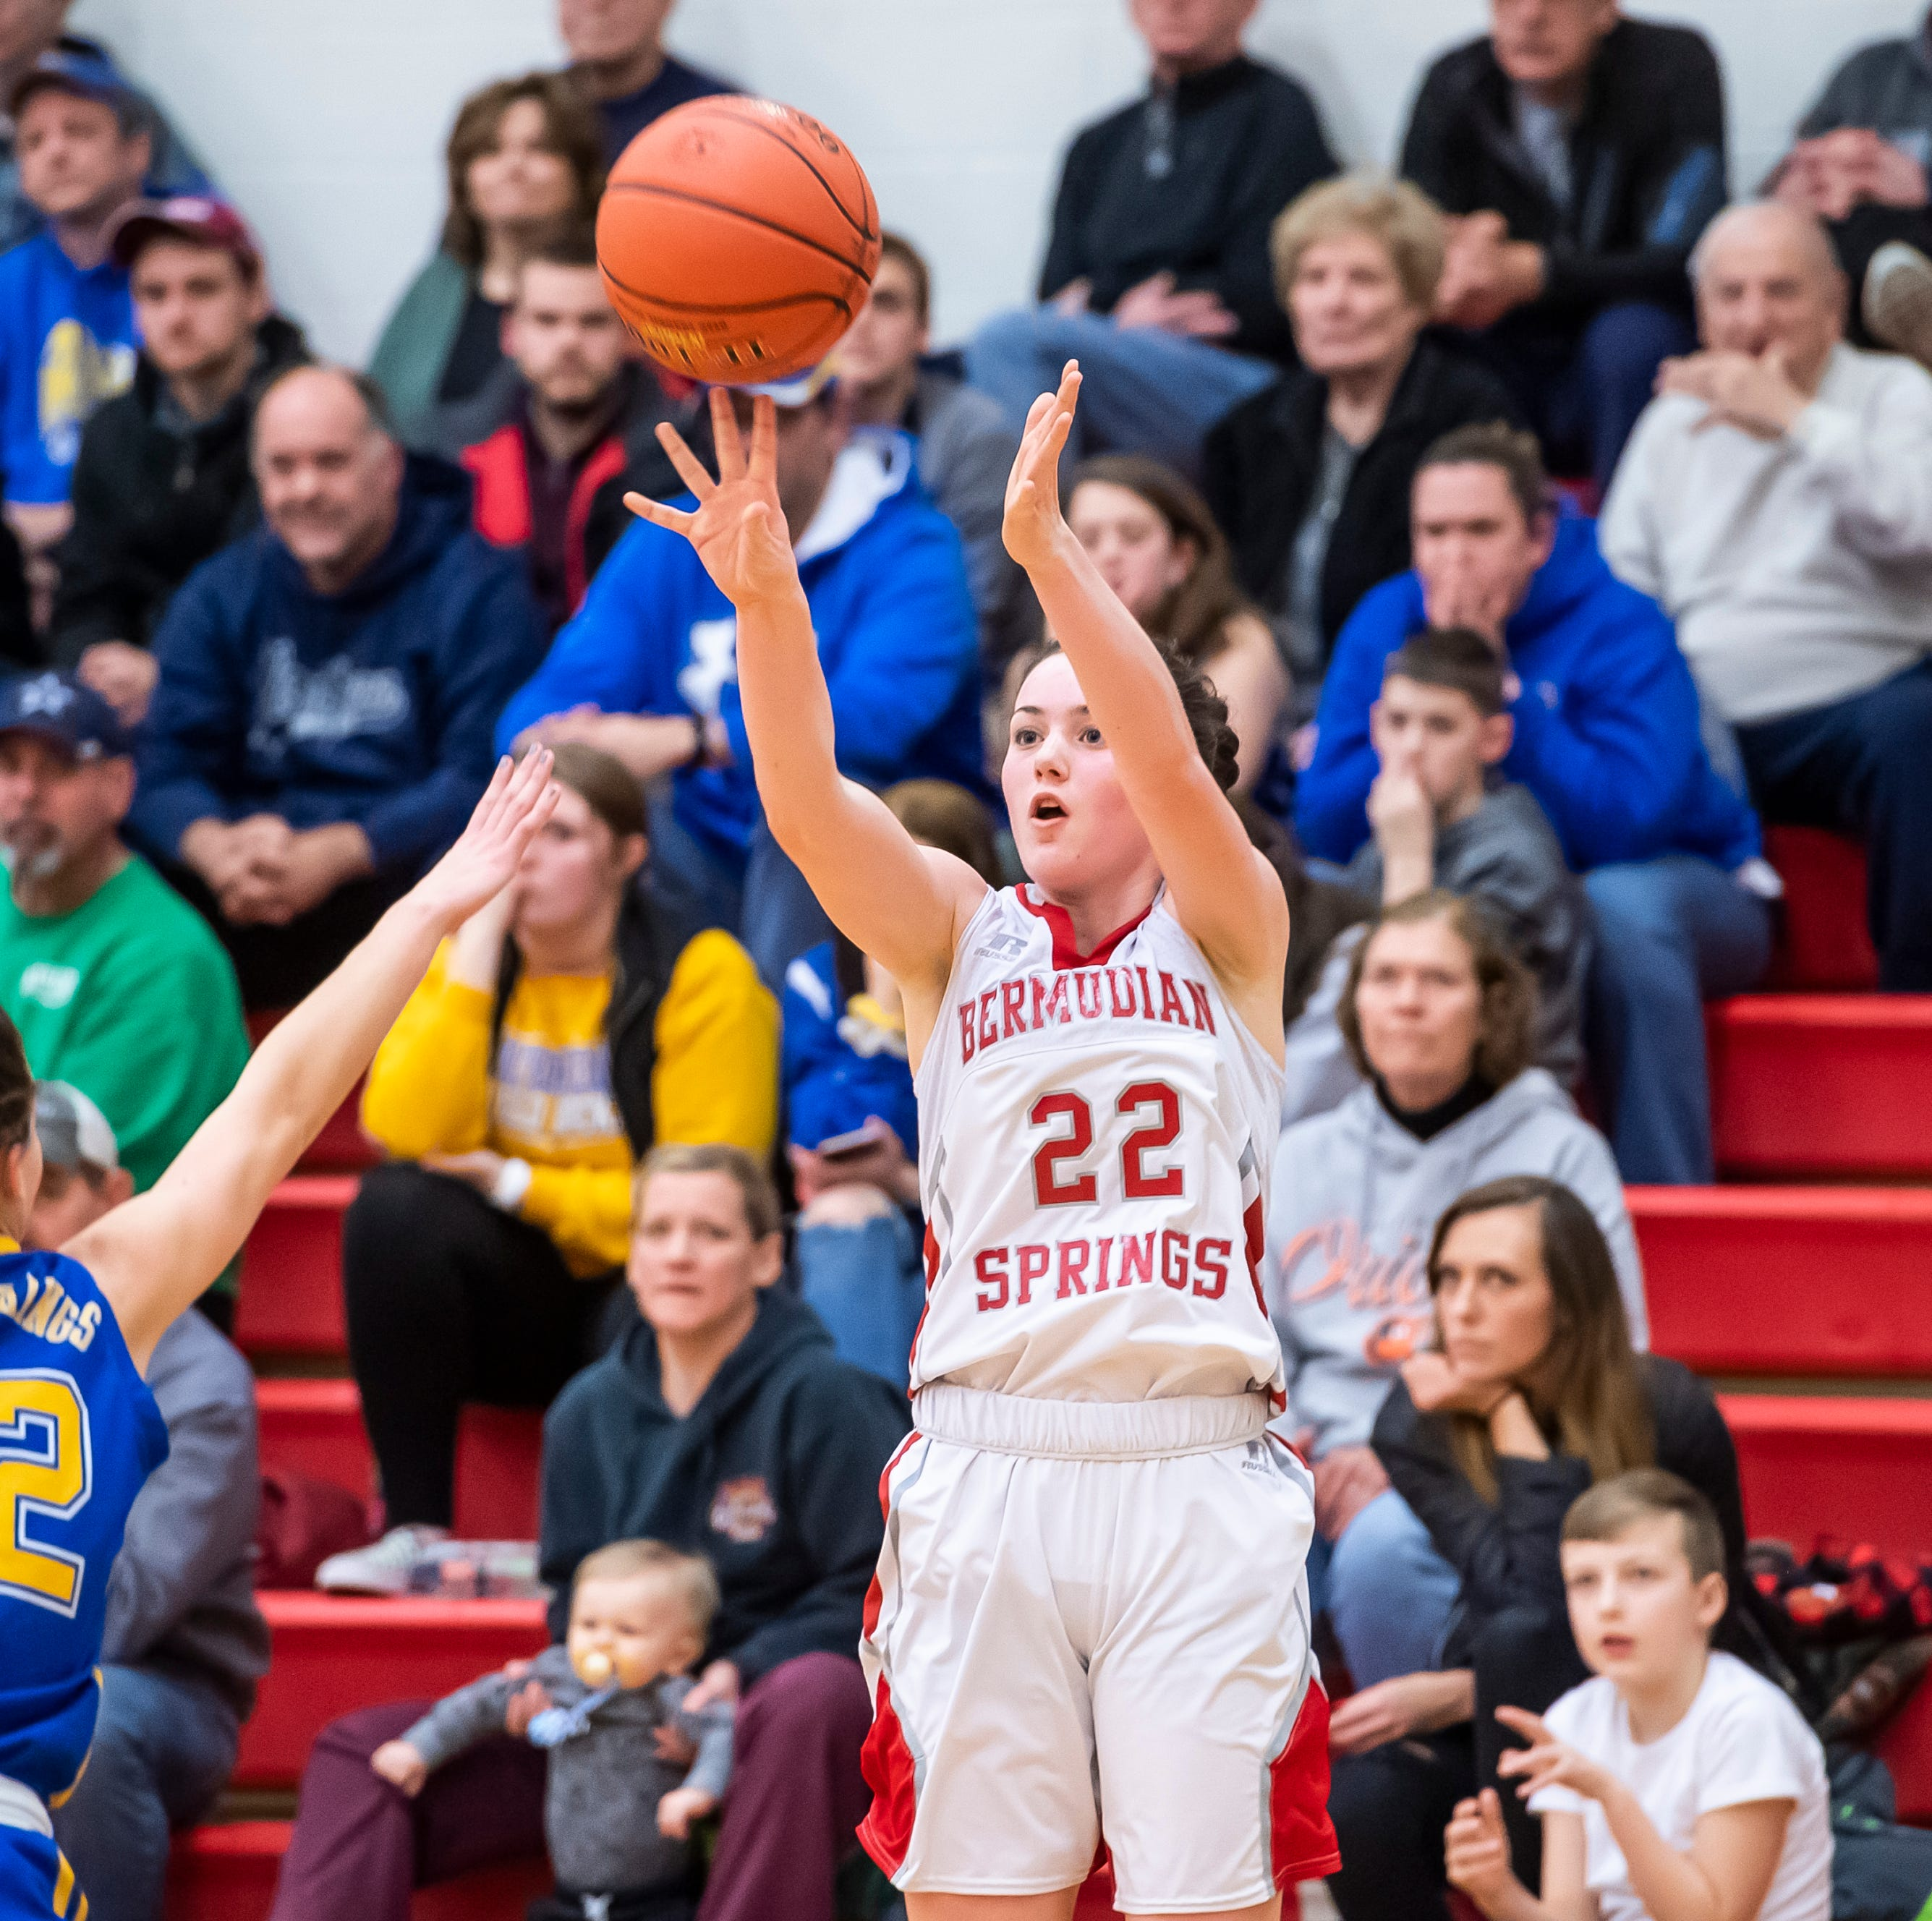 Northern Lebanon's season ends in first round loss Bermudian Springs basketball